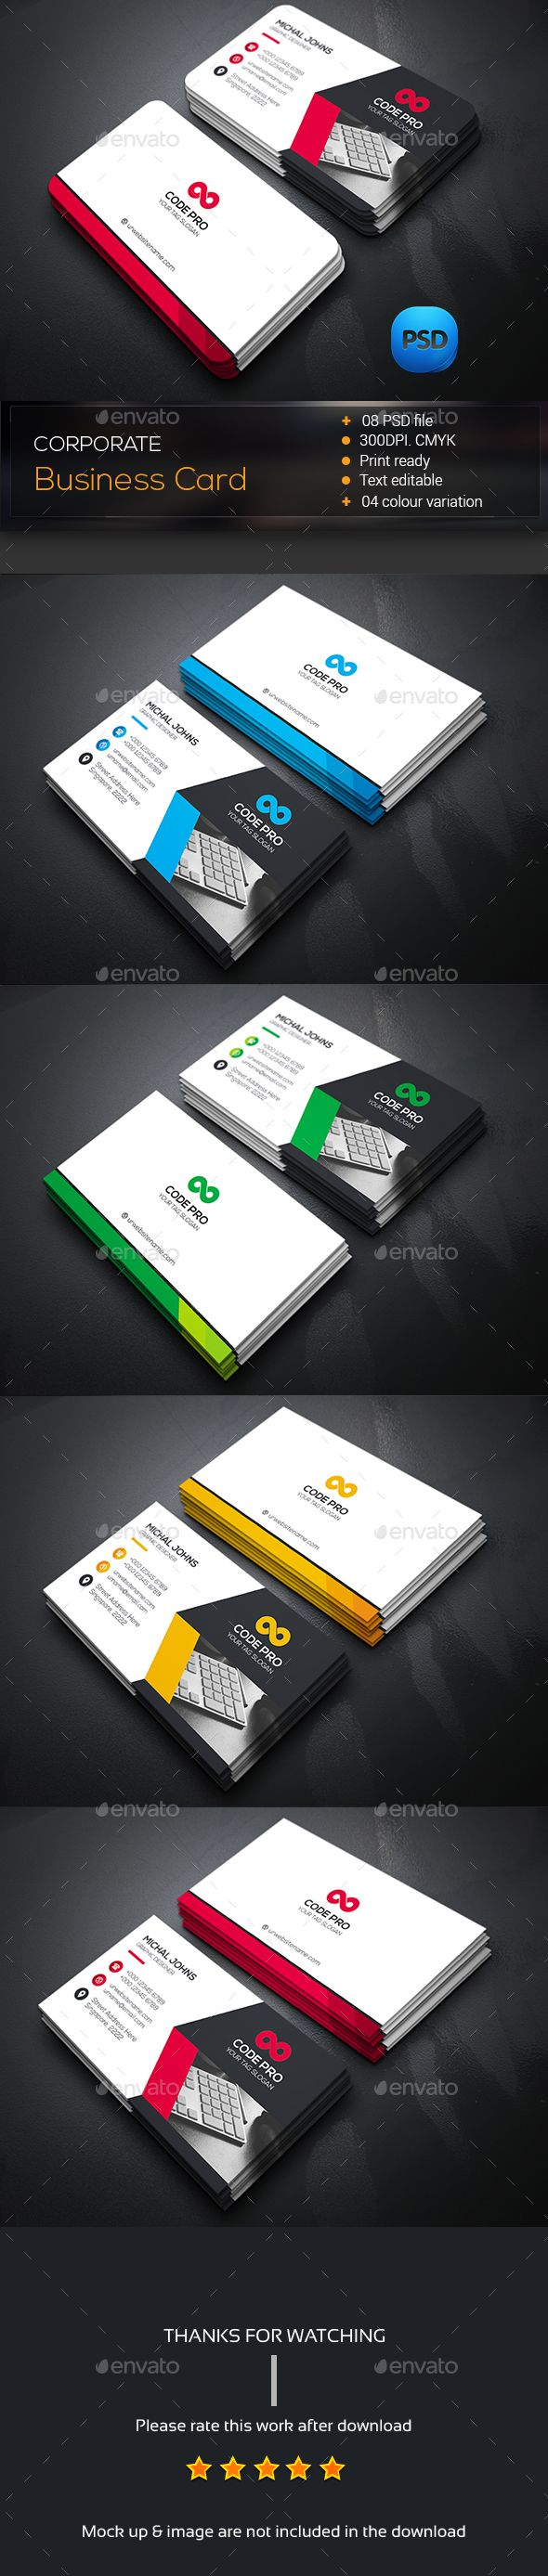 Creative Business Card Template PSD #design Download: http://graphicriver.net/item/creative-business-card/14535859?ref=ksioks